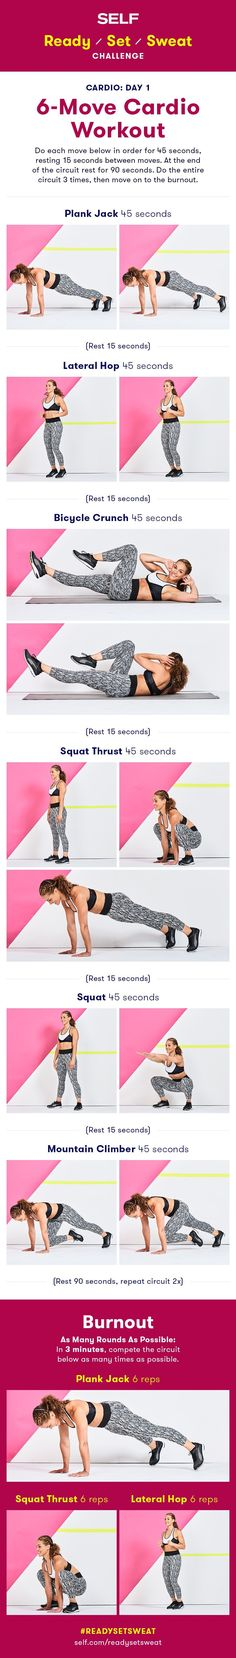 Have you signed up for our October workout challenge? The challenge is 28 days weeks) long consisting of cardio and strength total body exercises that will build muscle and endurance! Get stronger with plank jacks, lateral hops, bicycle Intense Cardio Workout, Cardio Abs, Hiit, Sweat Workout, Cardio Workouts, Workout Guide, Workout Challenge, Bicycle Crunches, Killer Workouts